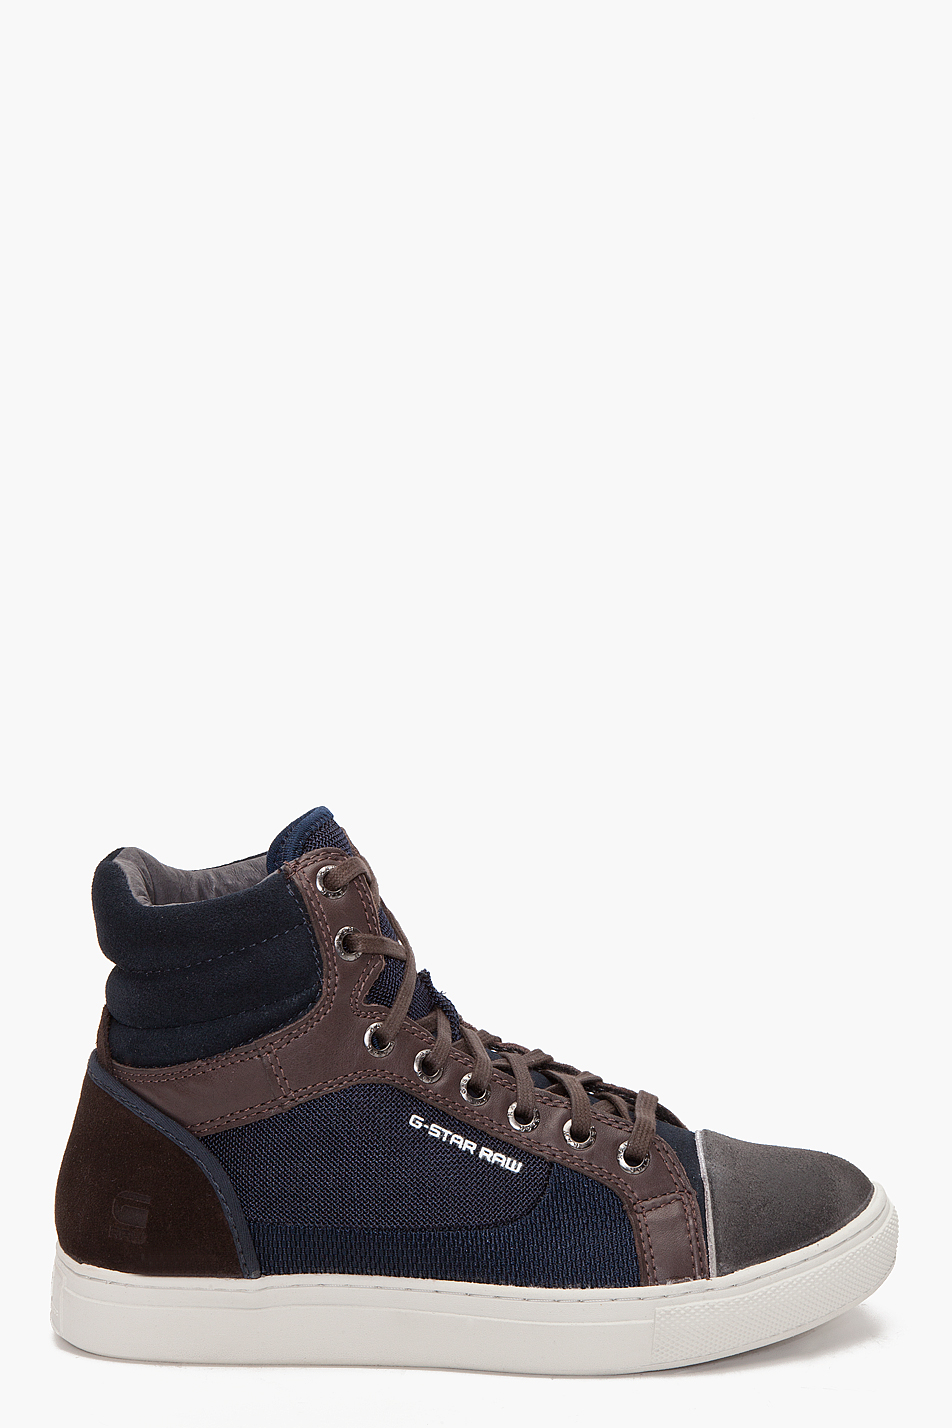 G Star Raw Augur Samovar Hi Sneakers In Brown For Men Lyst